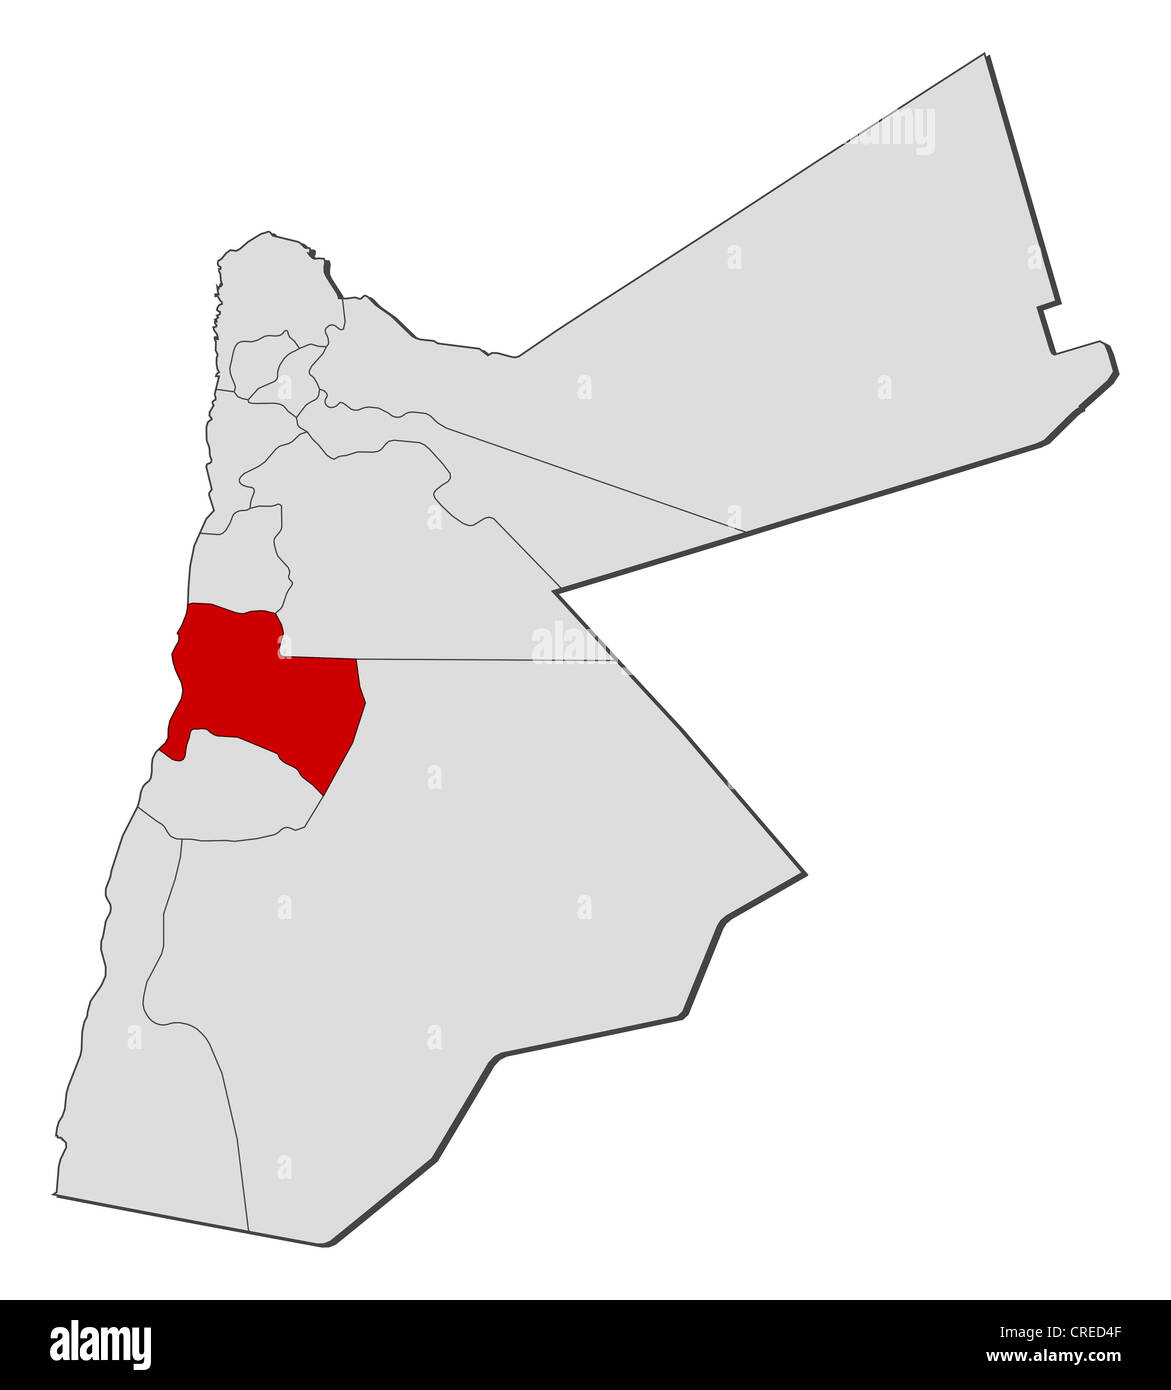 Political Map Of Jordan.Political Map Of Jordan With The Several Governorates Where Karak Is